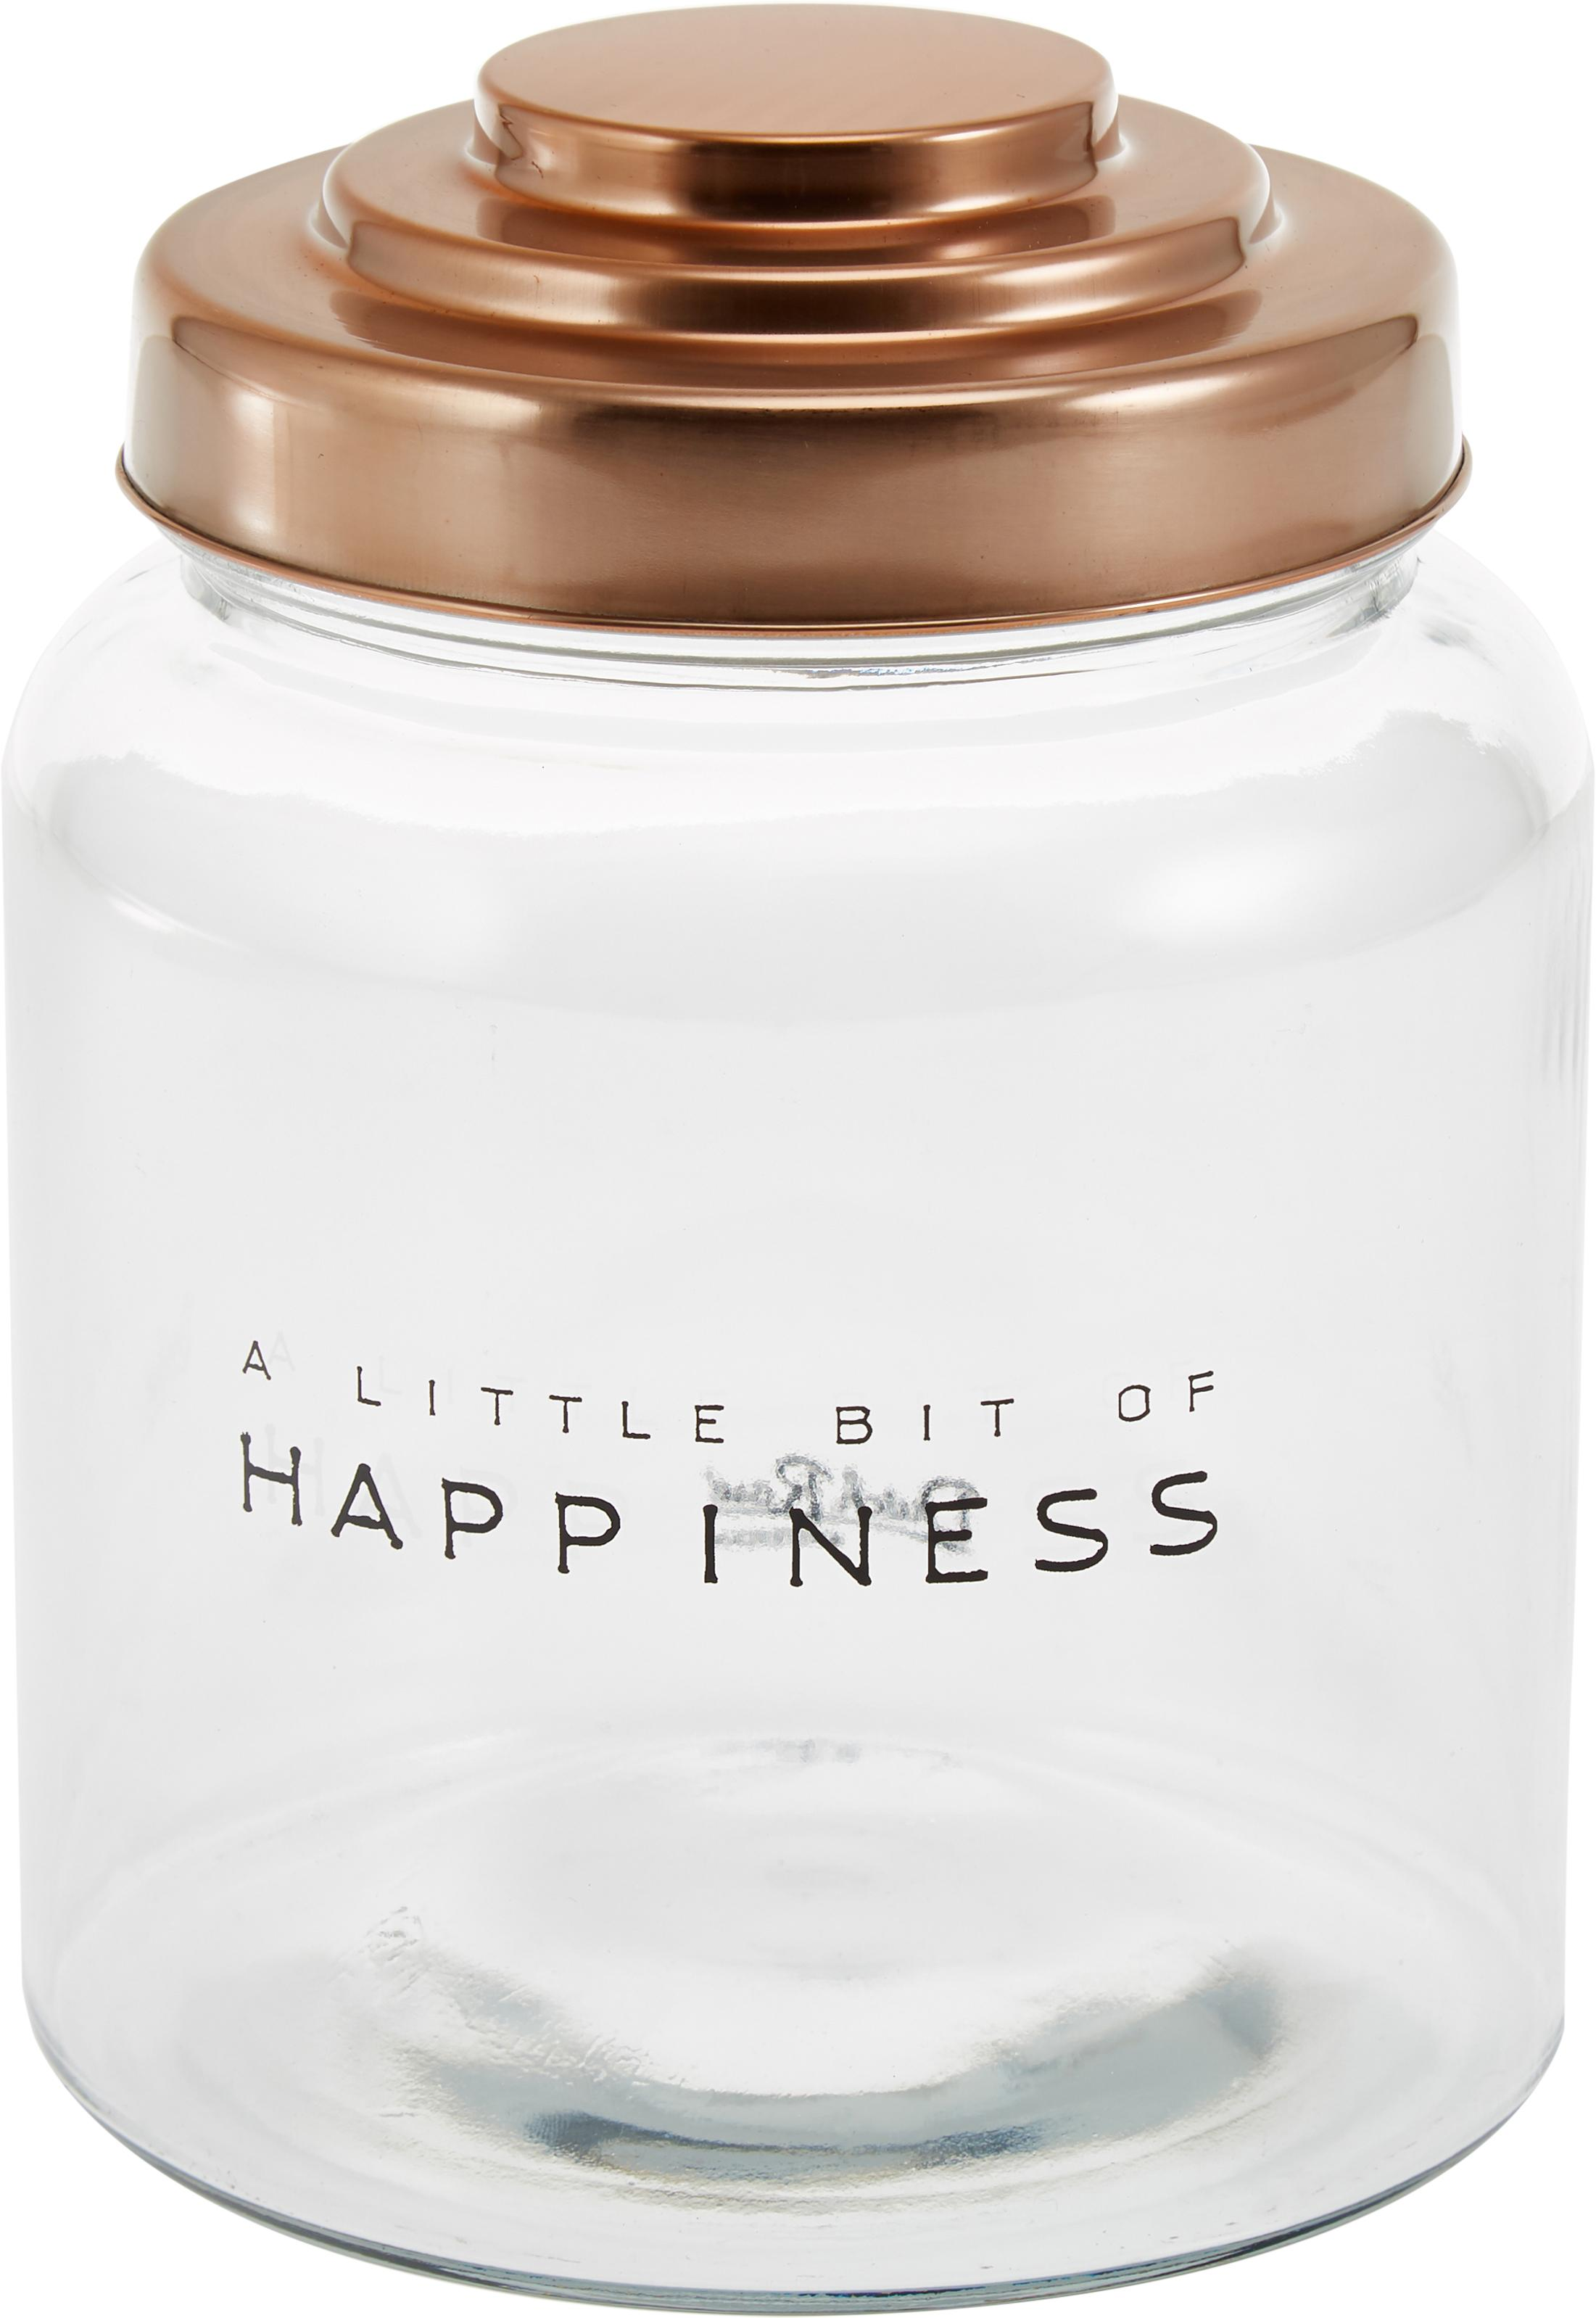 Caja decorativa Happiness, Transparente, Ø 16 x Al 21 cm